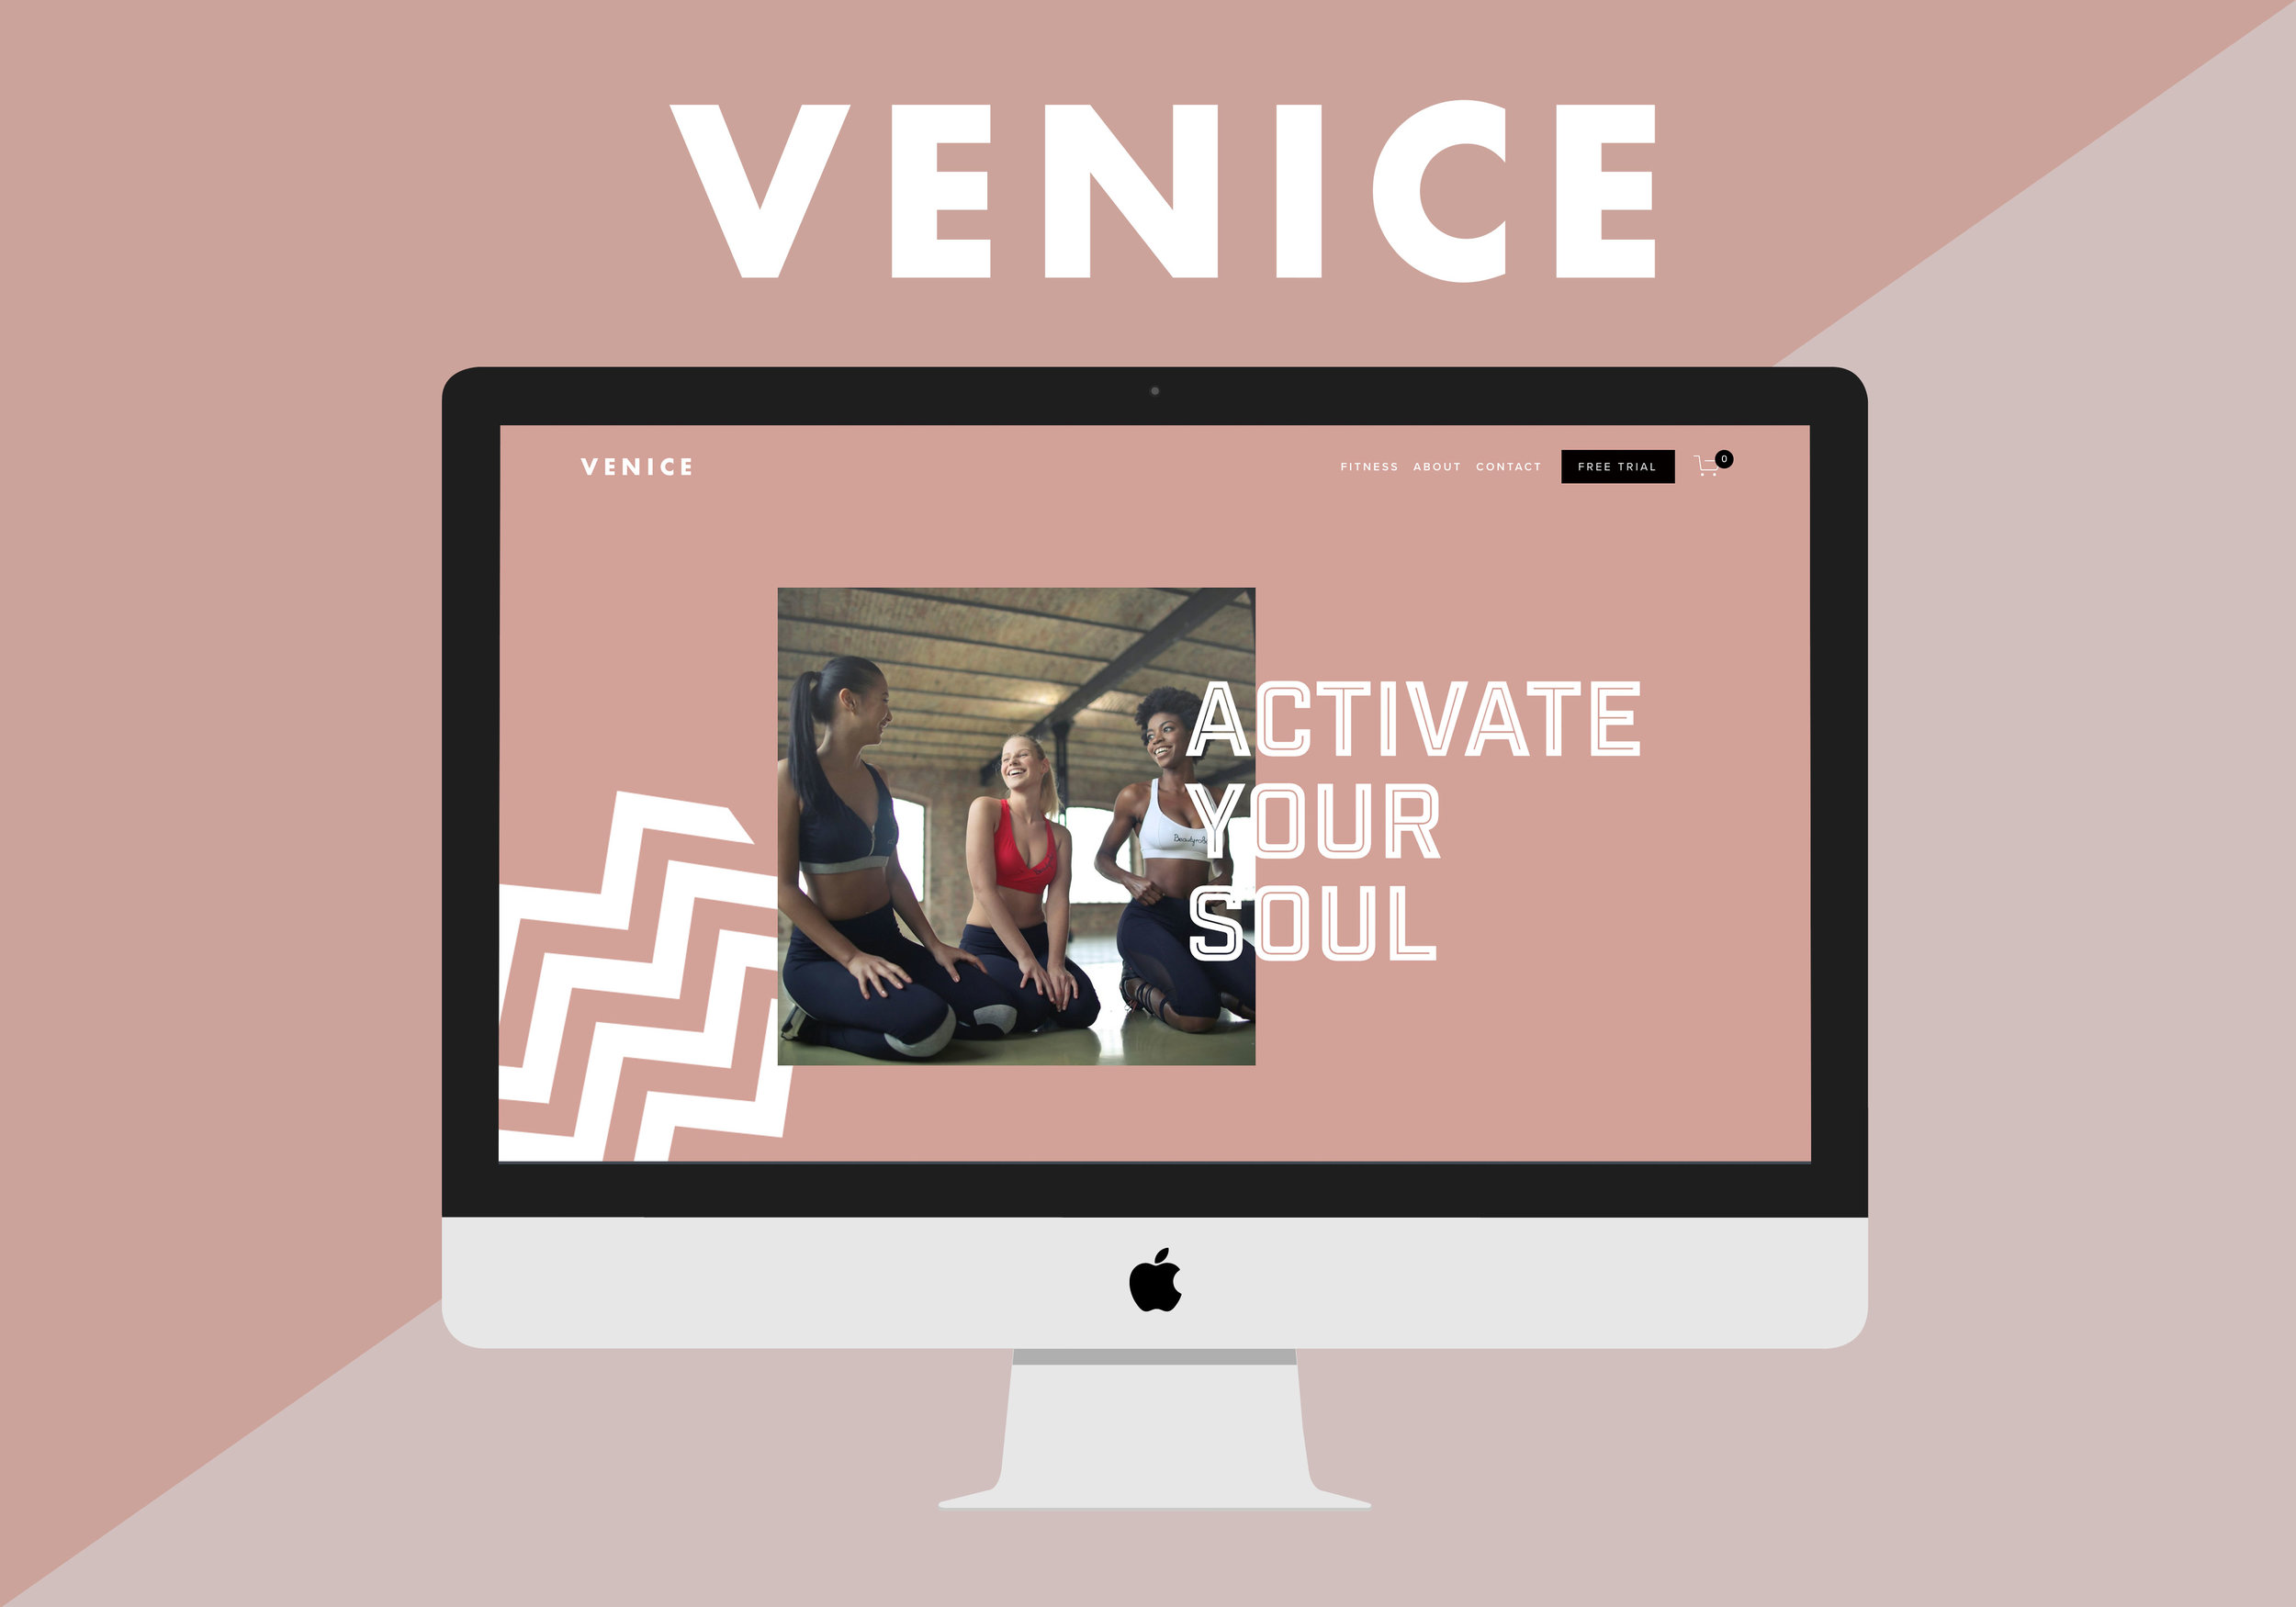 Launch With Erika Squarespace Web Designer | #squarespacetemplates #squarespacedesigner squarespace web design, squarespace designer, website design, website designer in san diego, small business tips, DIY website, women in business, femepreneurs, bucketlist bombshells, squarespace templates, squarespace CSS tricks, beauty and lifestyle, health coach, holistic coach, health practitioner, women in business, latinas in business, web designer, Squarespace tricks